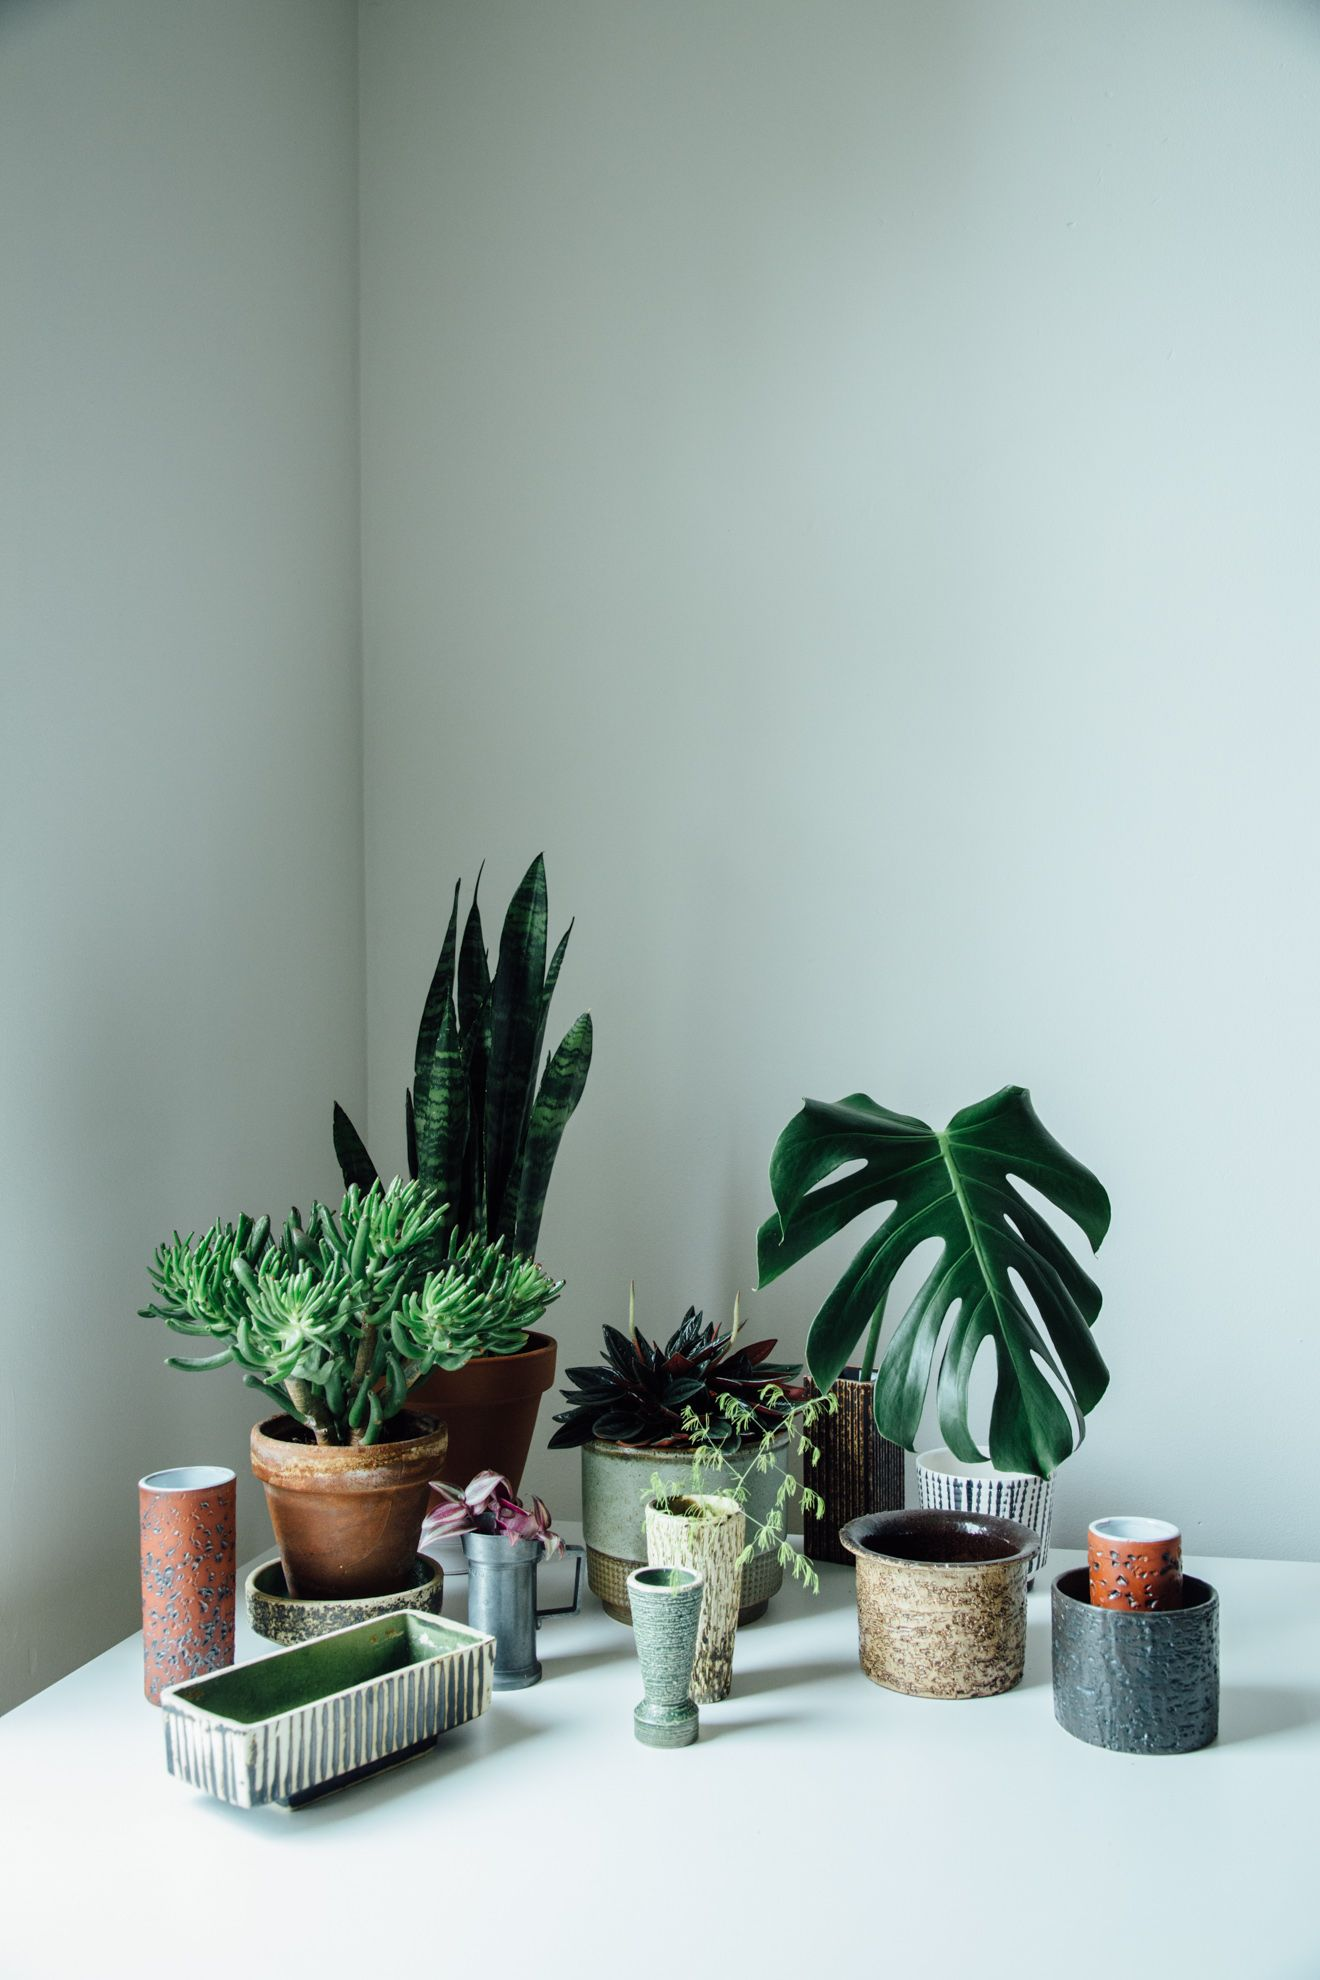 Plante D'intérieur Botanic Urban Jungle Bloggers My Plant Gang By Botanic Stilllife Indoor